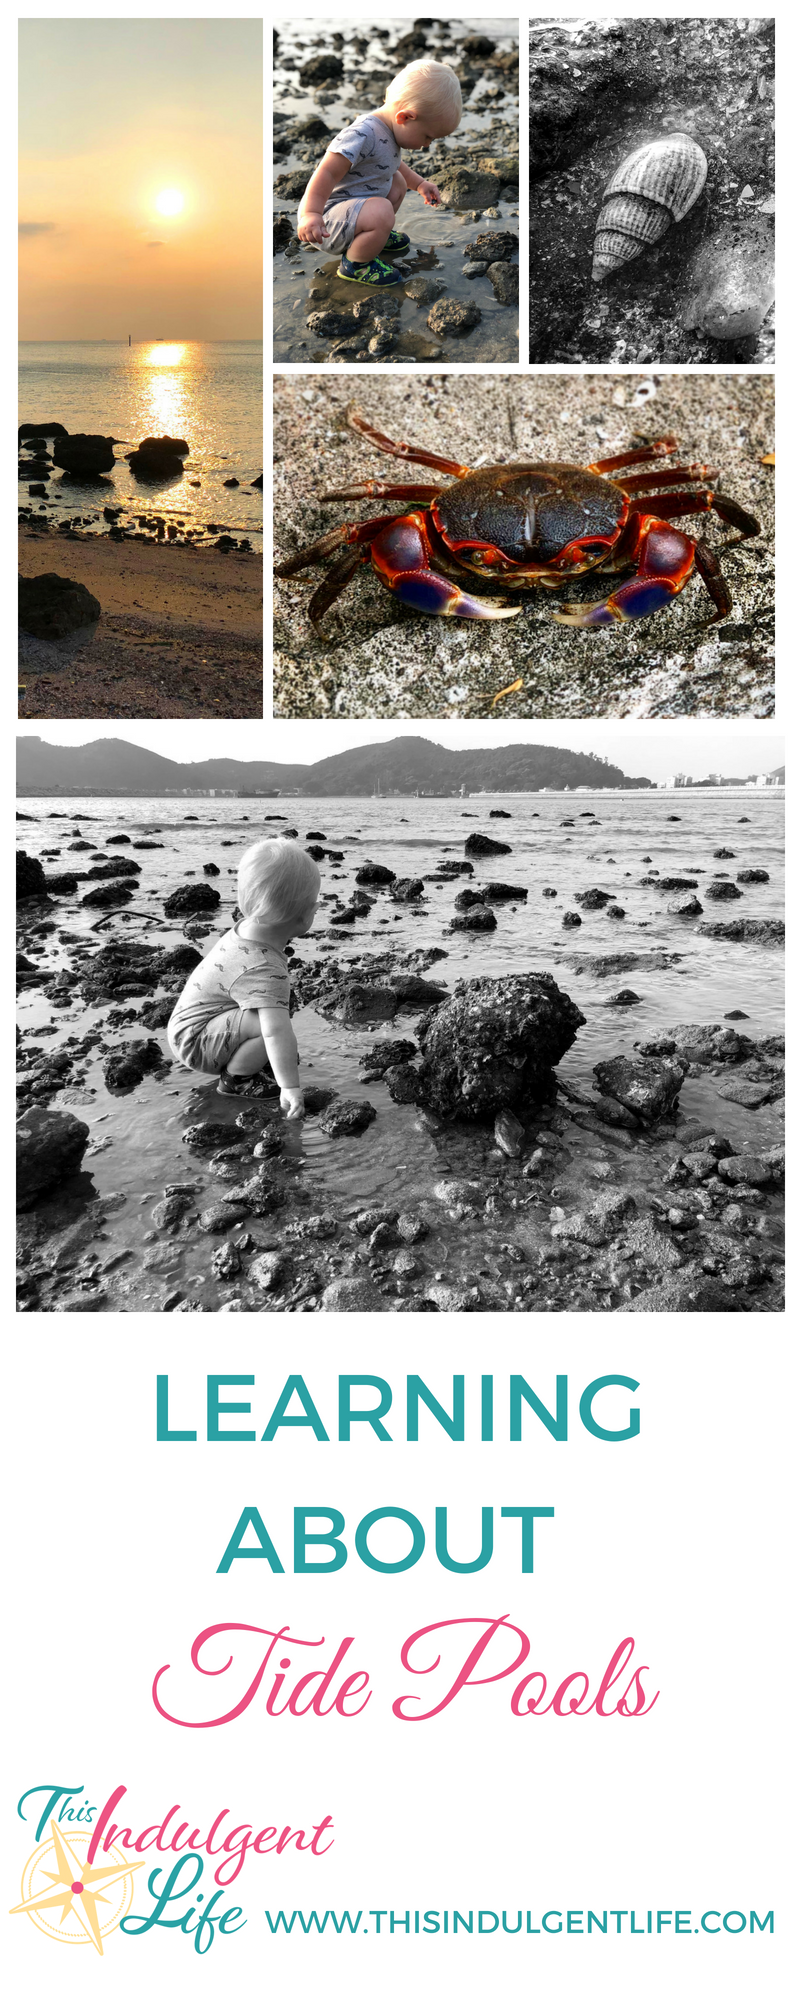 Learning About Tide Pools | This Indulgent Life | Follow along as we explore the life inside tide pools. | #toddlerlife #nature #naturewalk #criticalthinking #tidepools #oceanlife #homeschooling #unschooling #roadschooling #sealife #learning